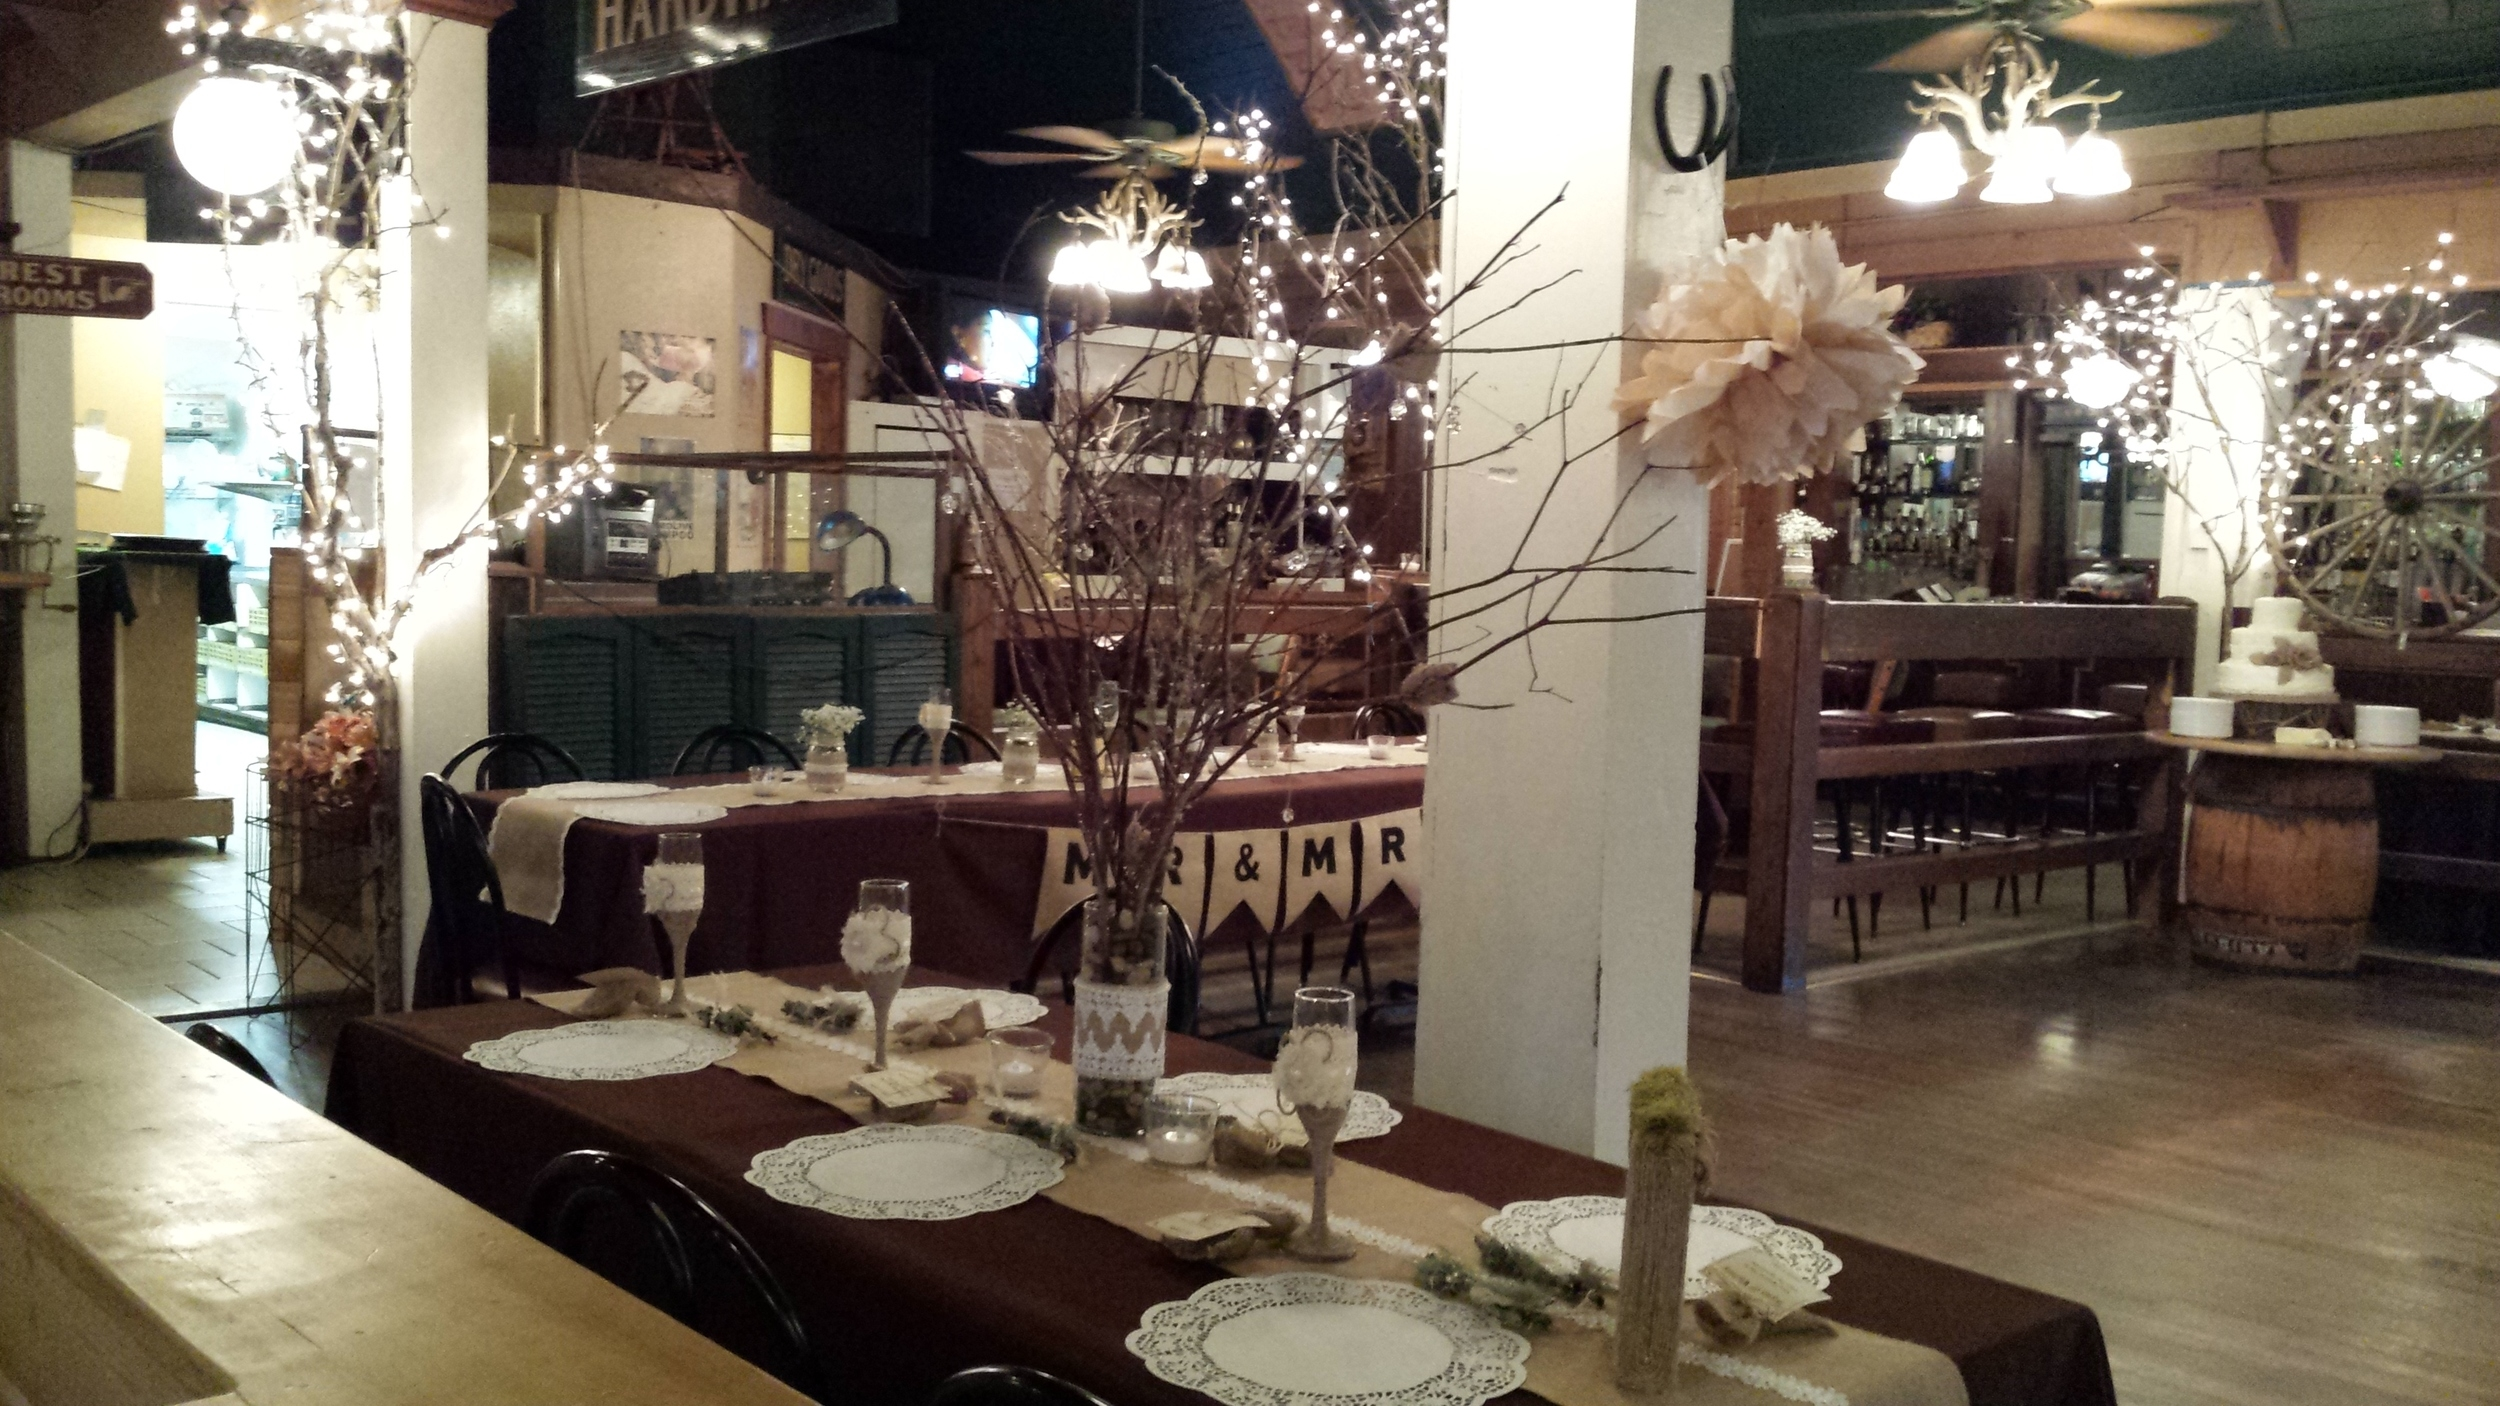 brown,wwhite,lights, and cake table.jpg